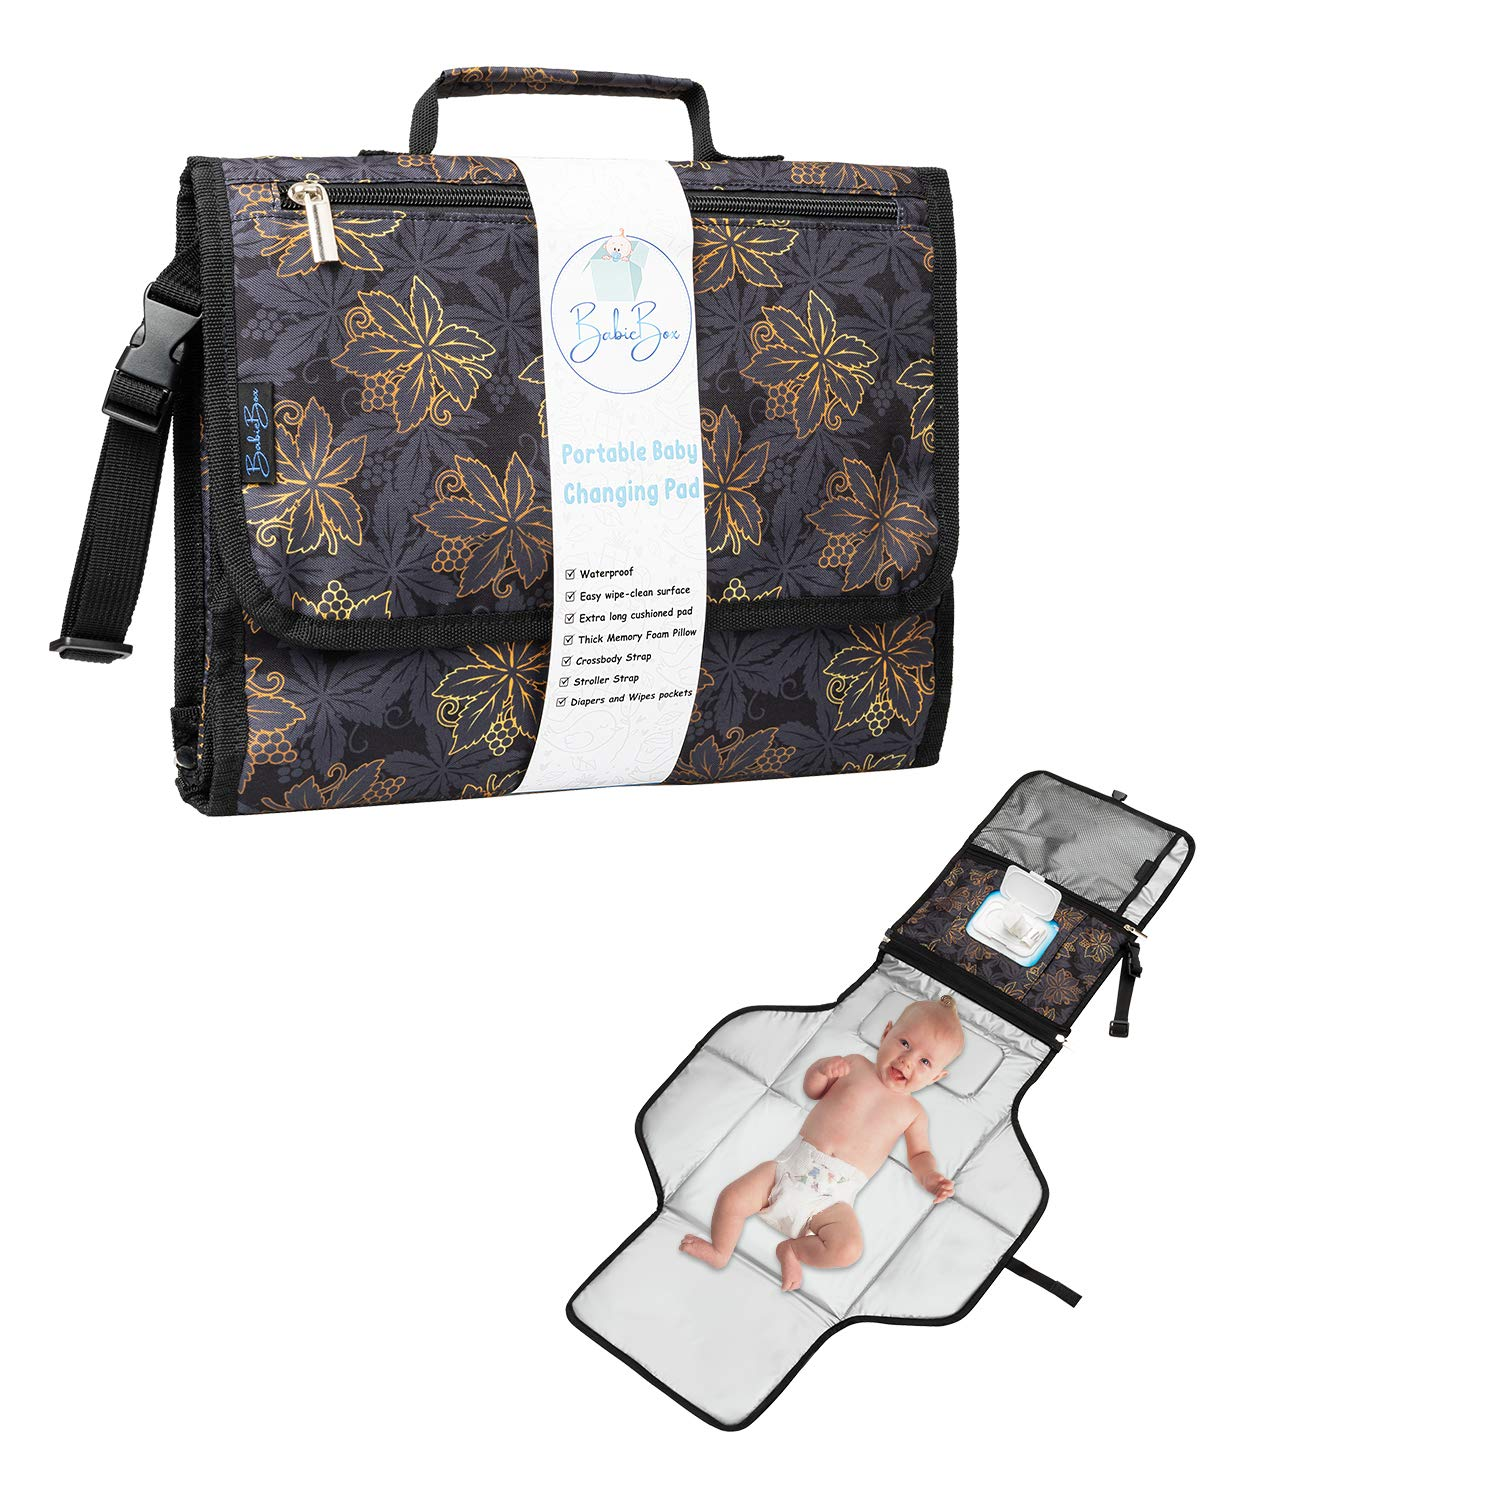 Portable Diaper Changing Pad for Baby – Premium Quality Waterproof Travel Station with Wipeable Mat and Built - in Memory Foam Pillow - Detachable Organizer Clutch with Extra Long Cushioned Pad